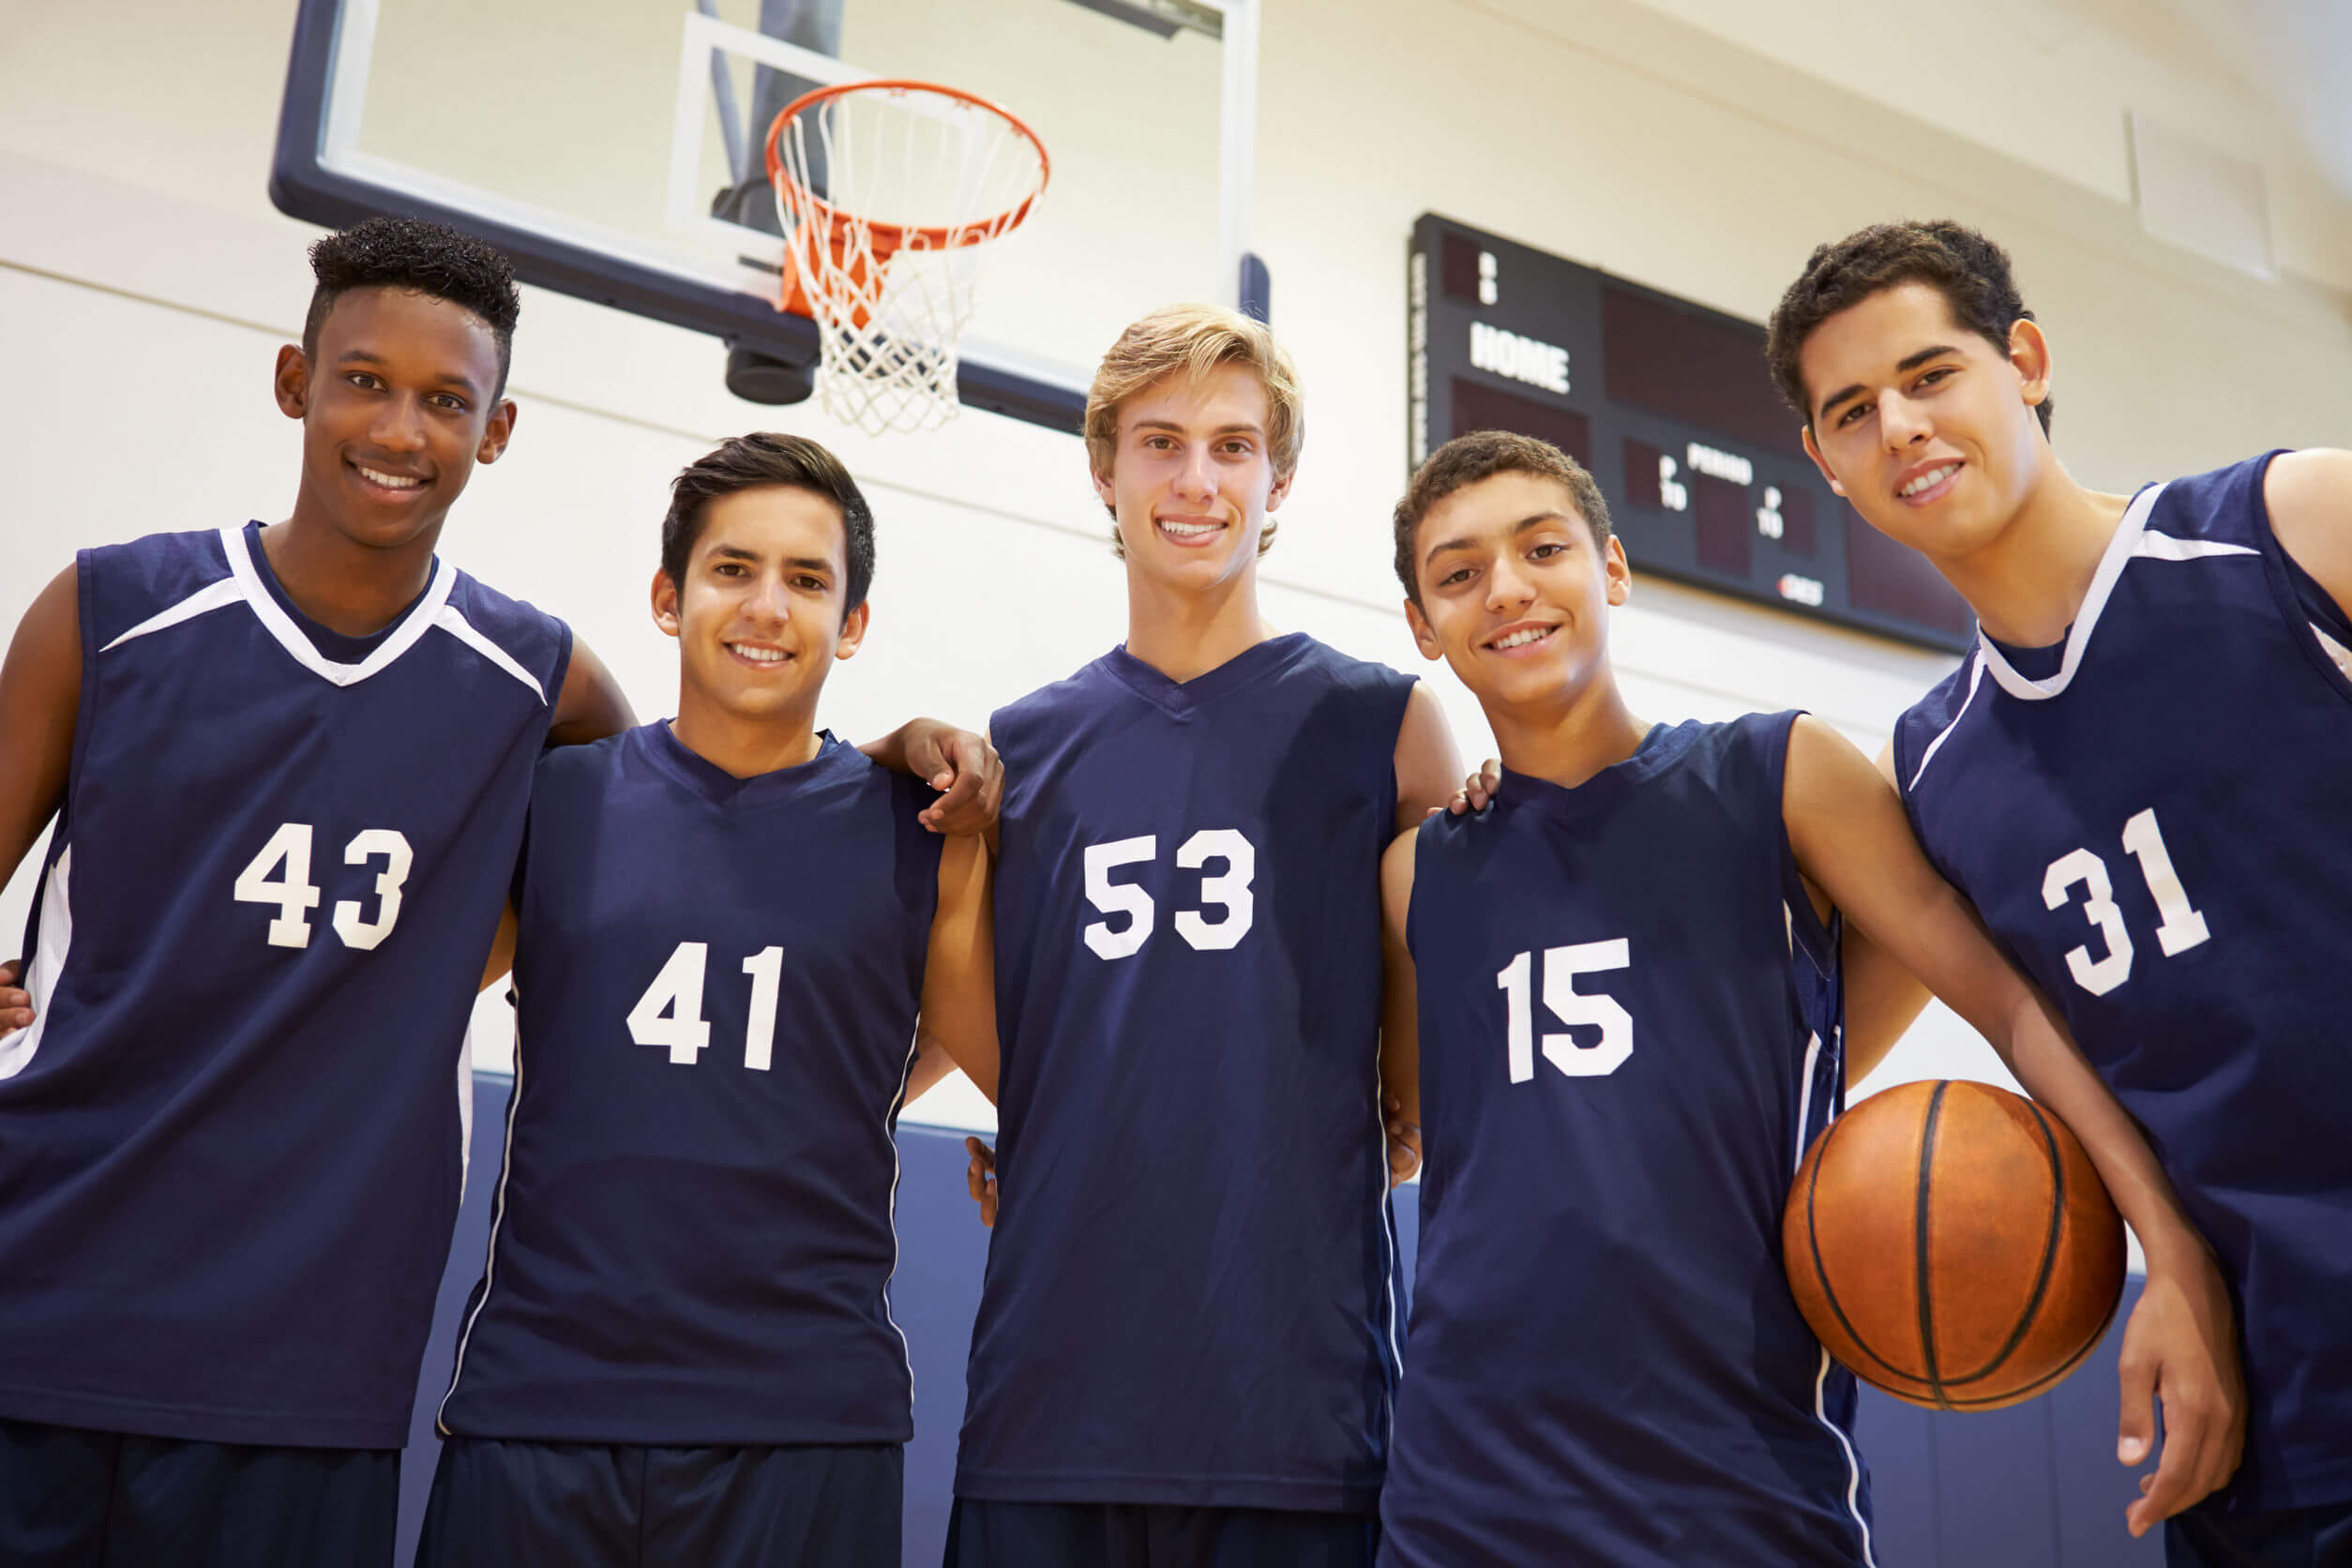 33474402 - members of male high school basketball team